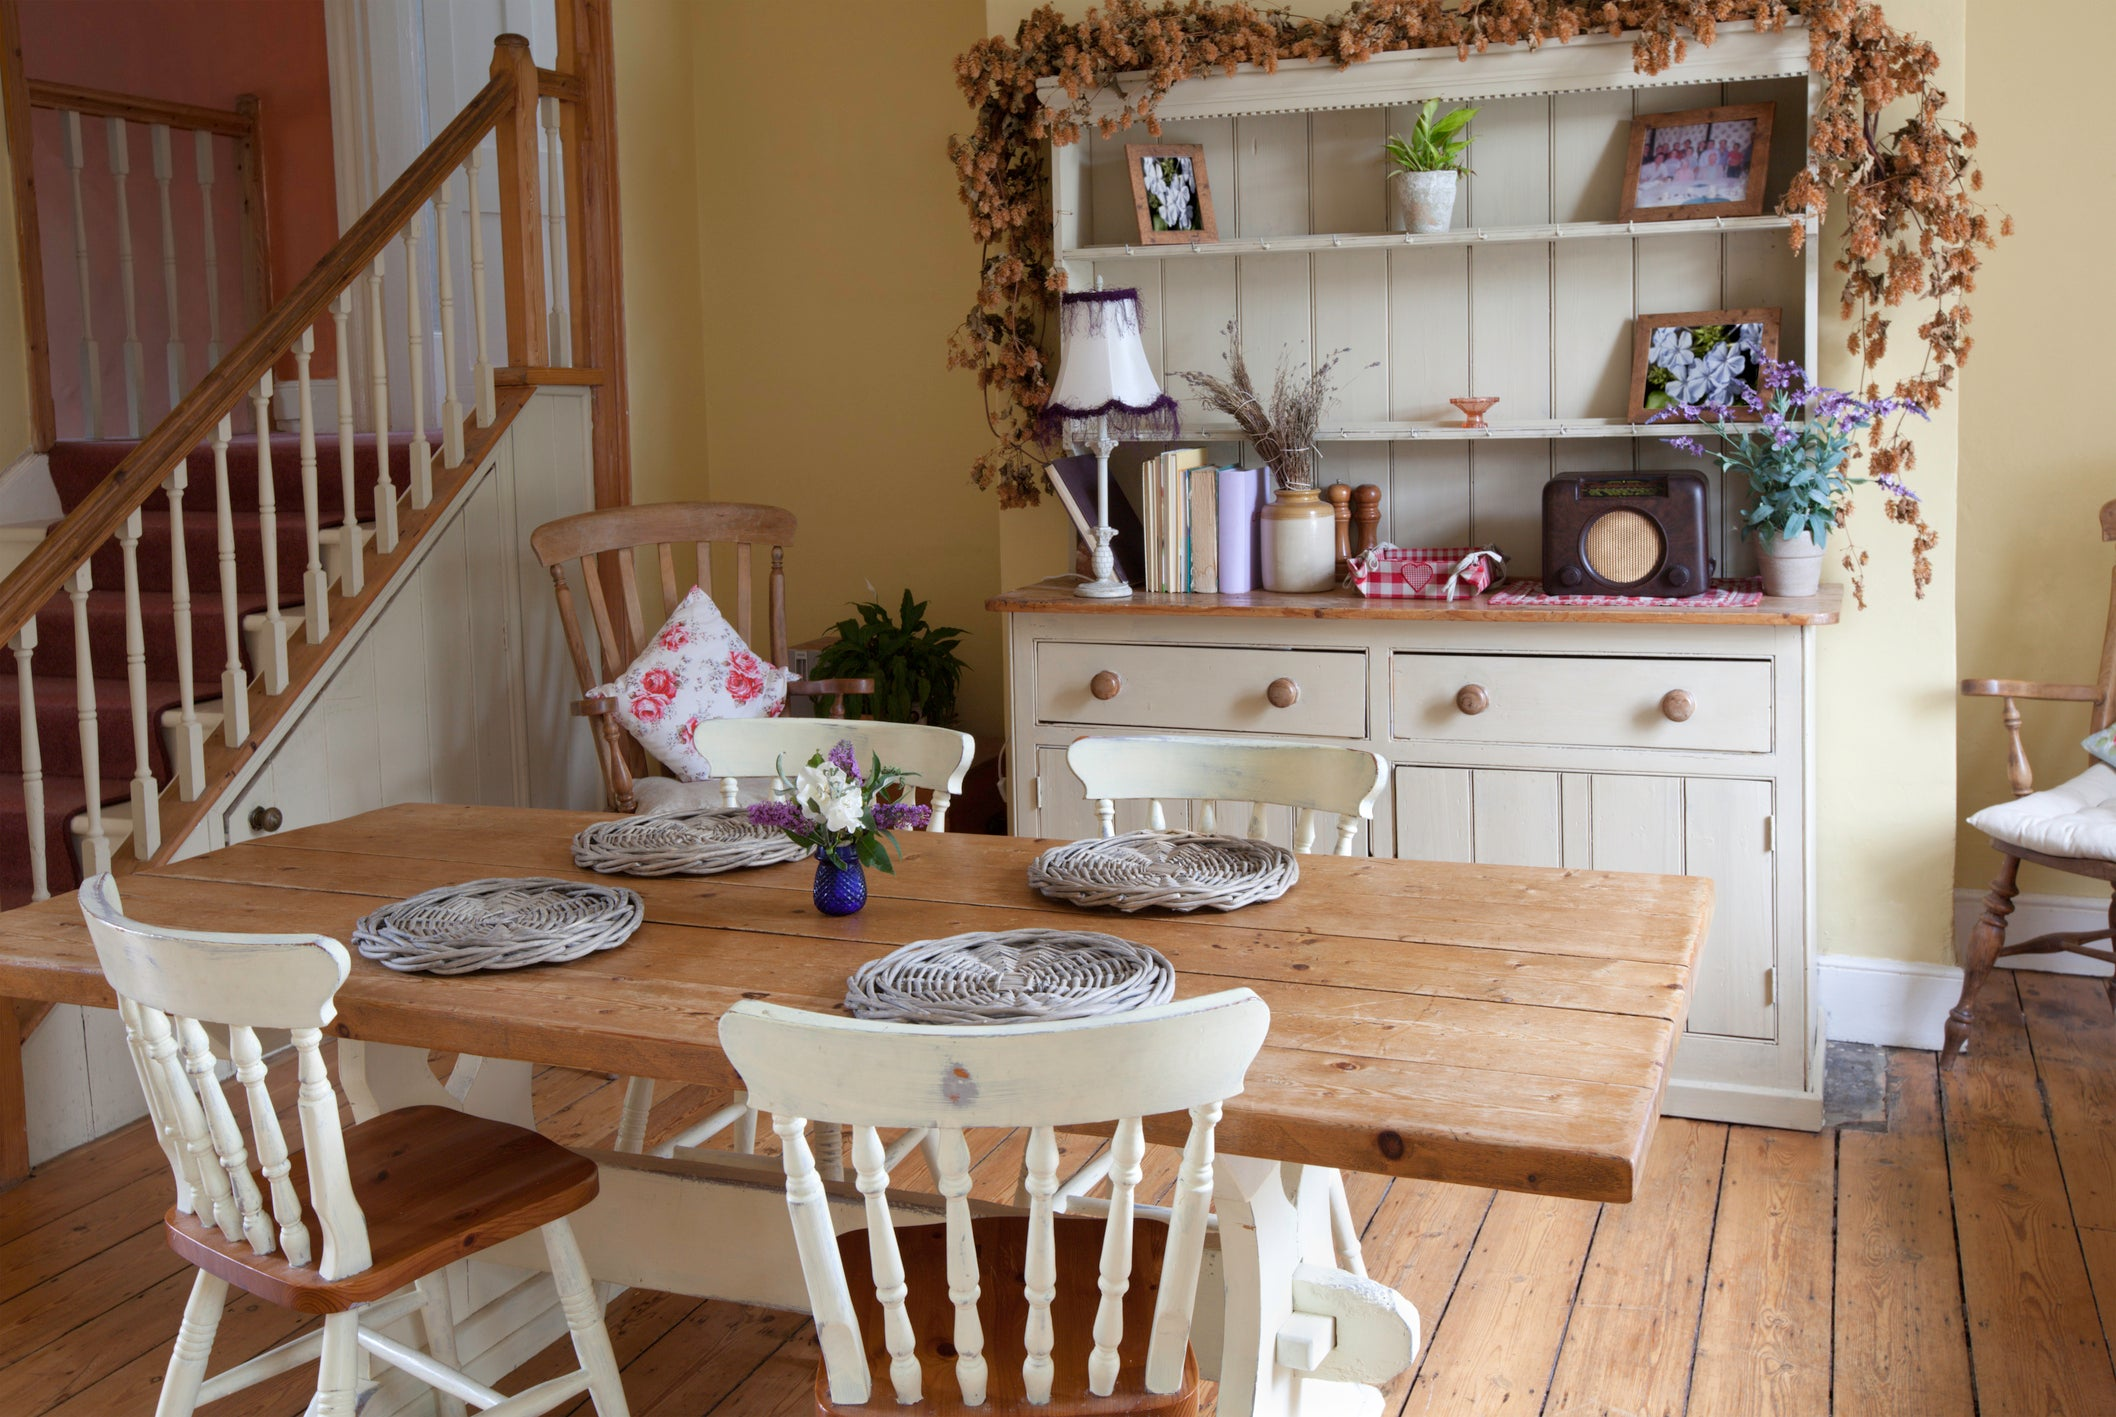 Rustic farmhouse kitchen with wooden table and cream welsh dresser